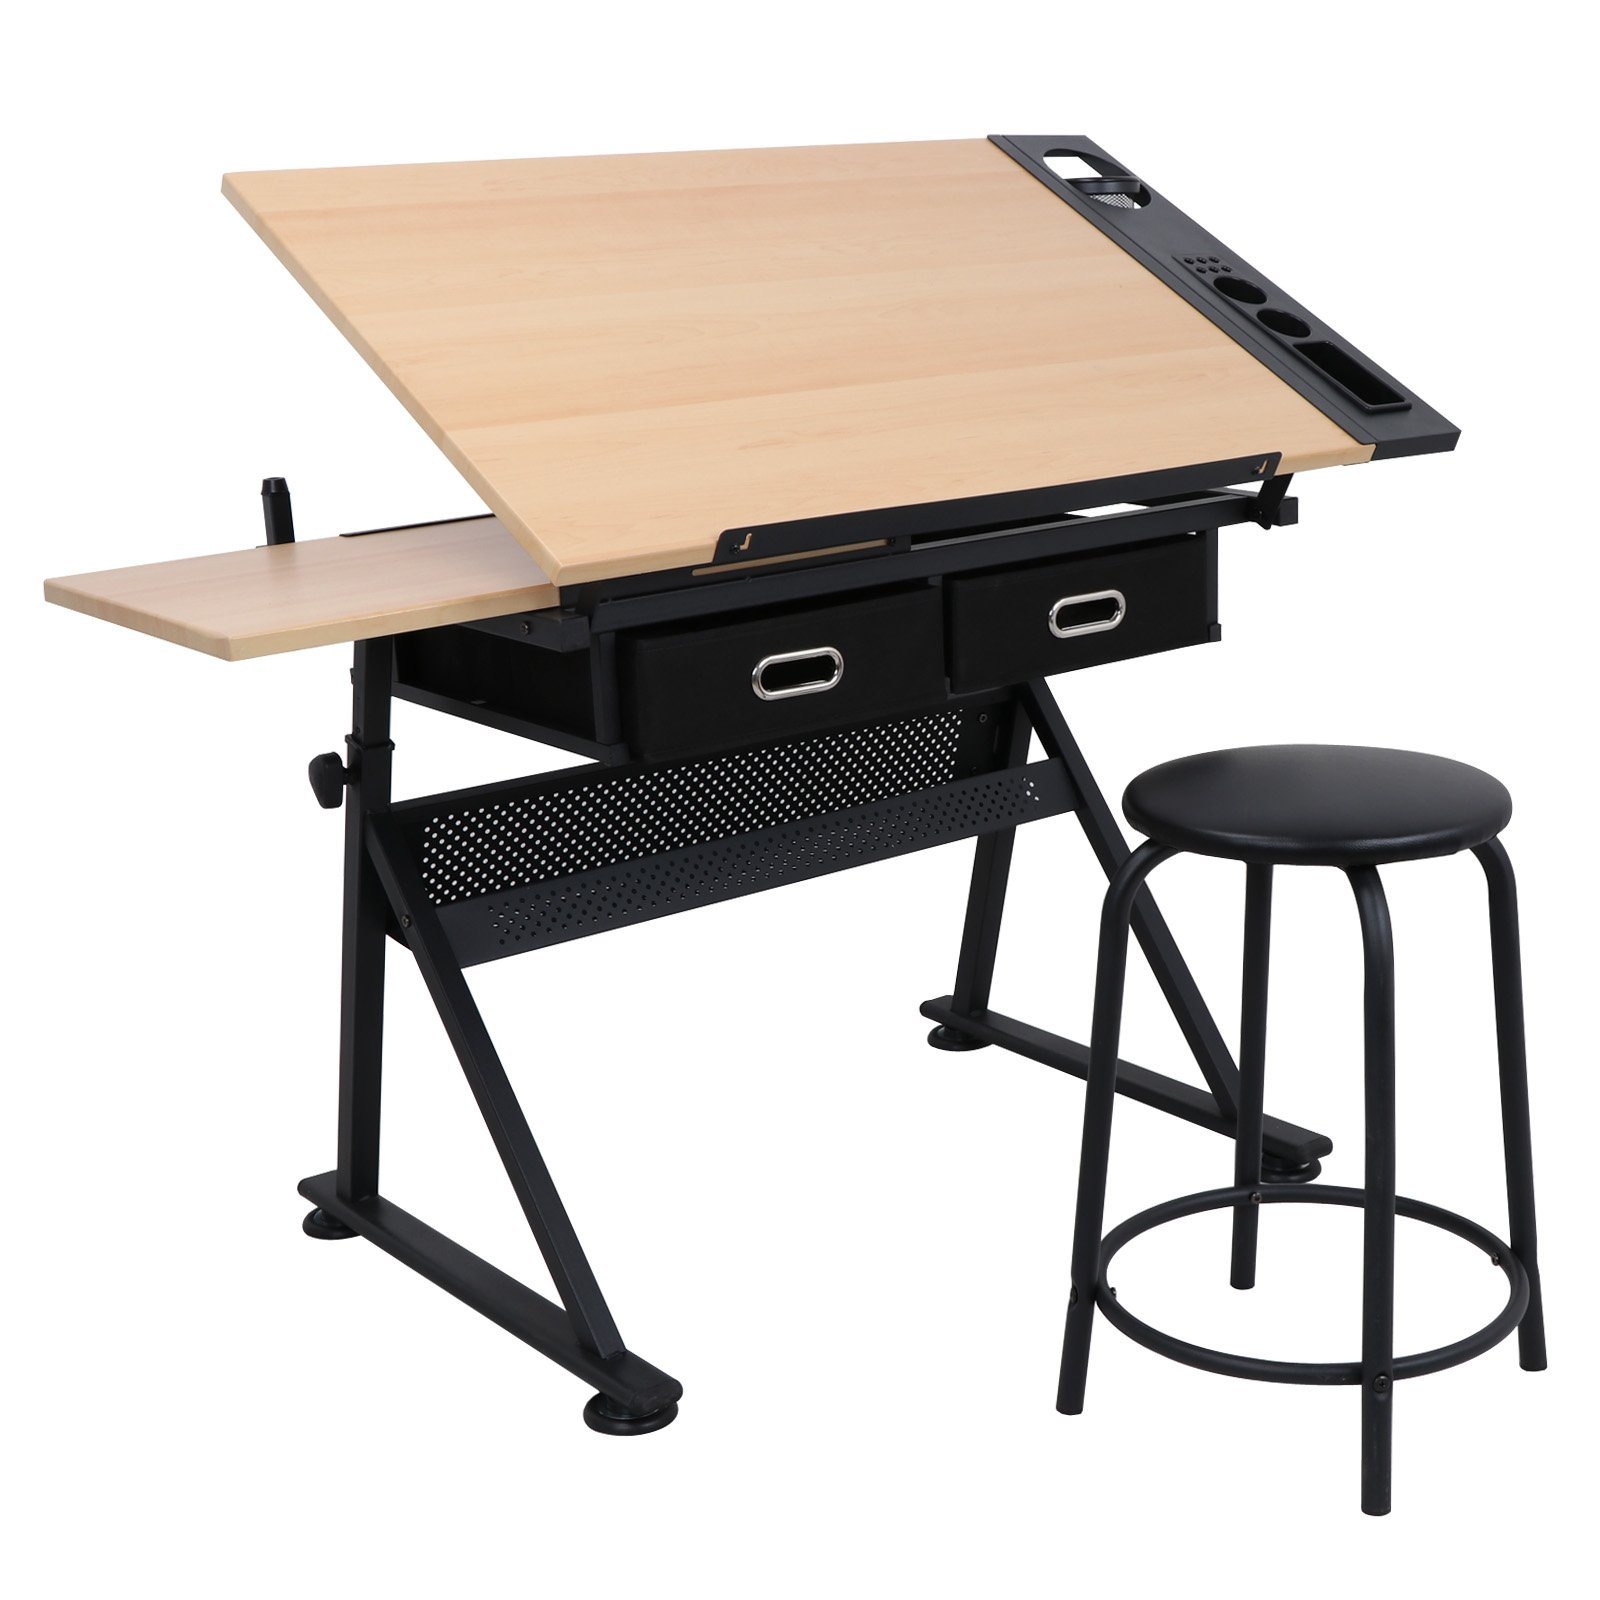 Smartxchoices 34 in Tiltable Drafting Desk Set Art Drawing Desk Height Adjustable Tabletop Writing Desk or Workstation w/ 3 Drawers and a Stool for Office and Home